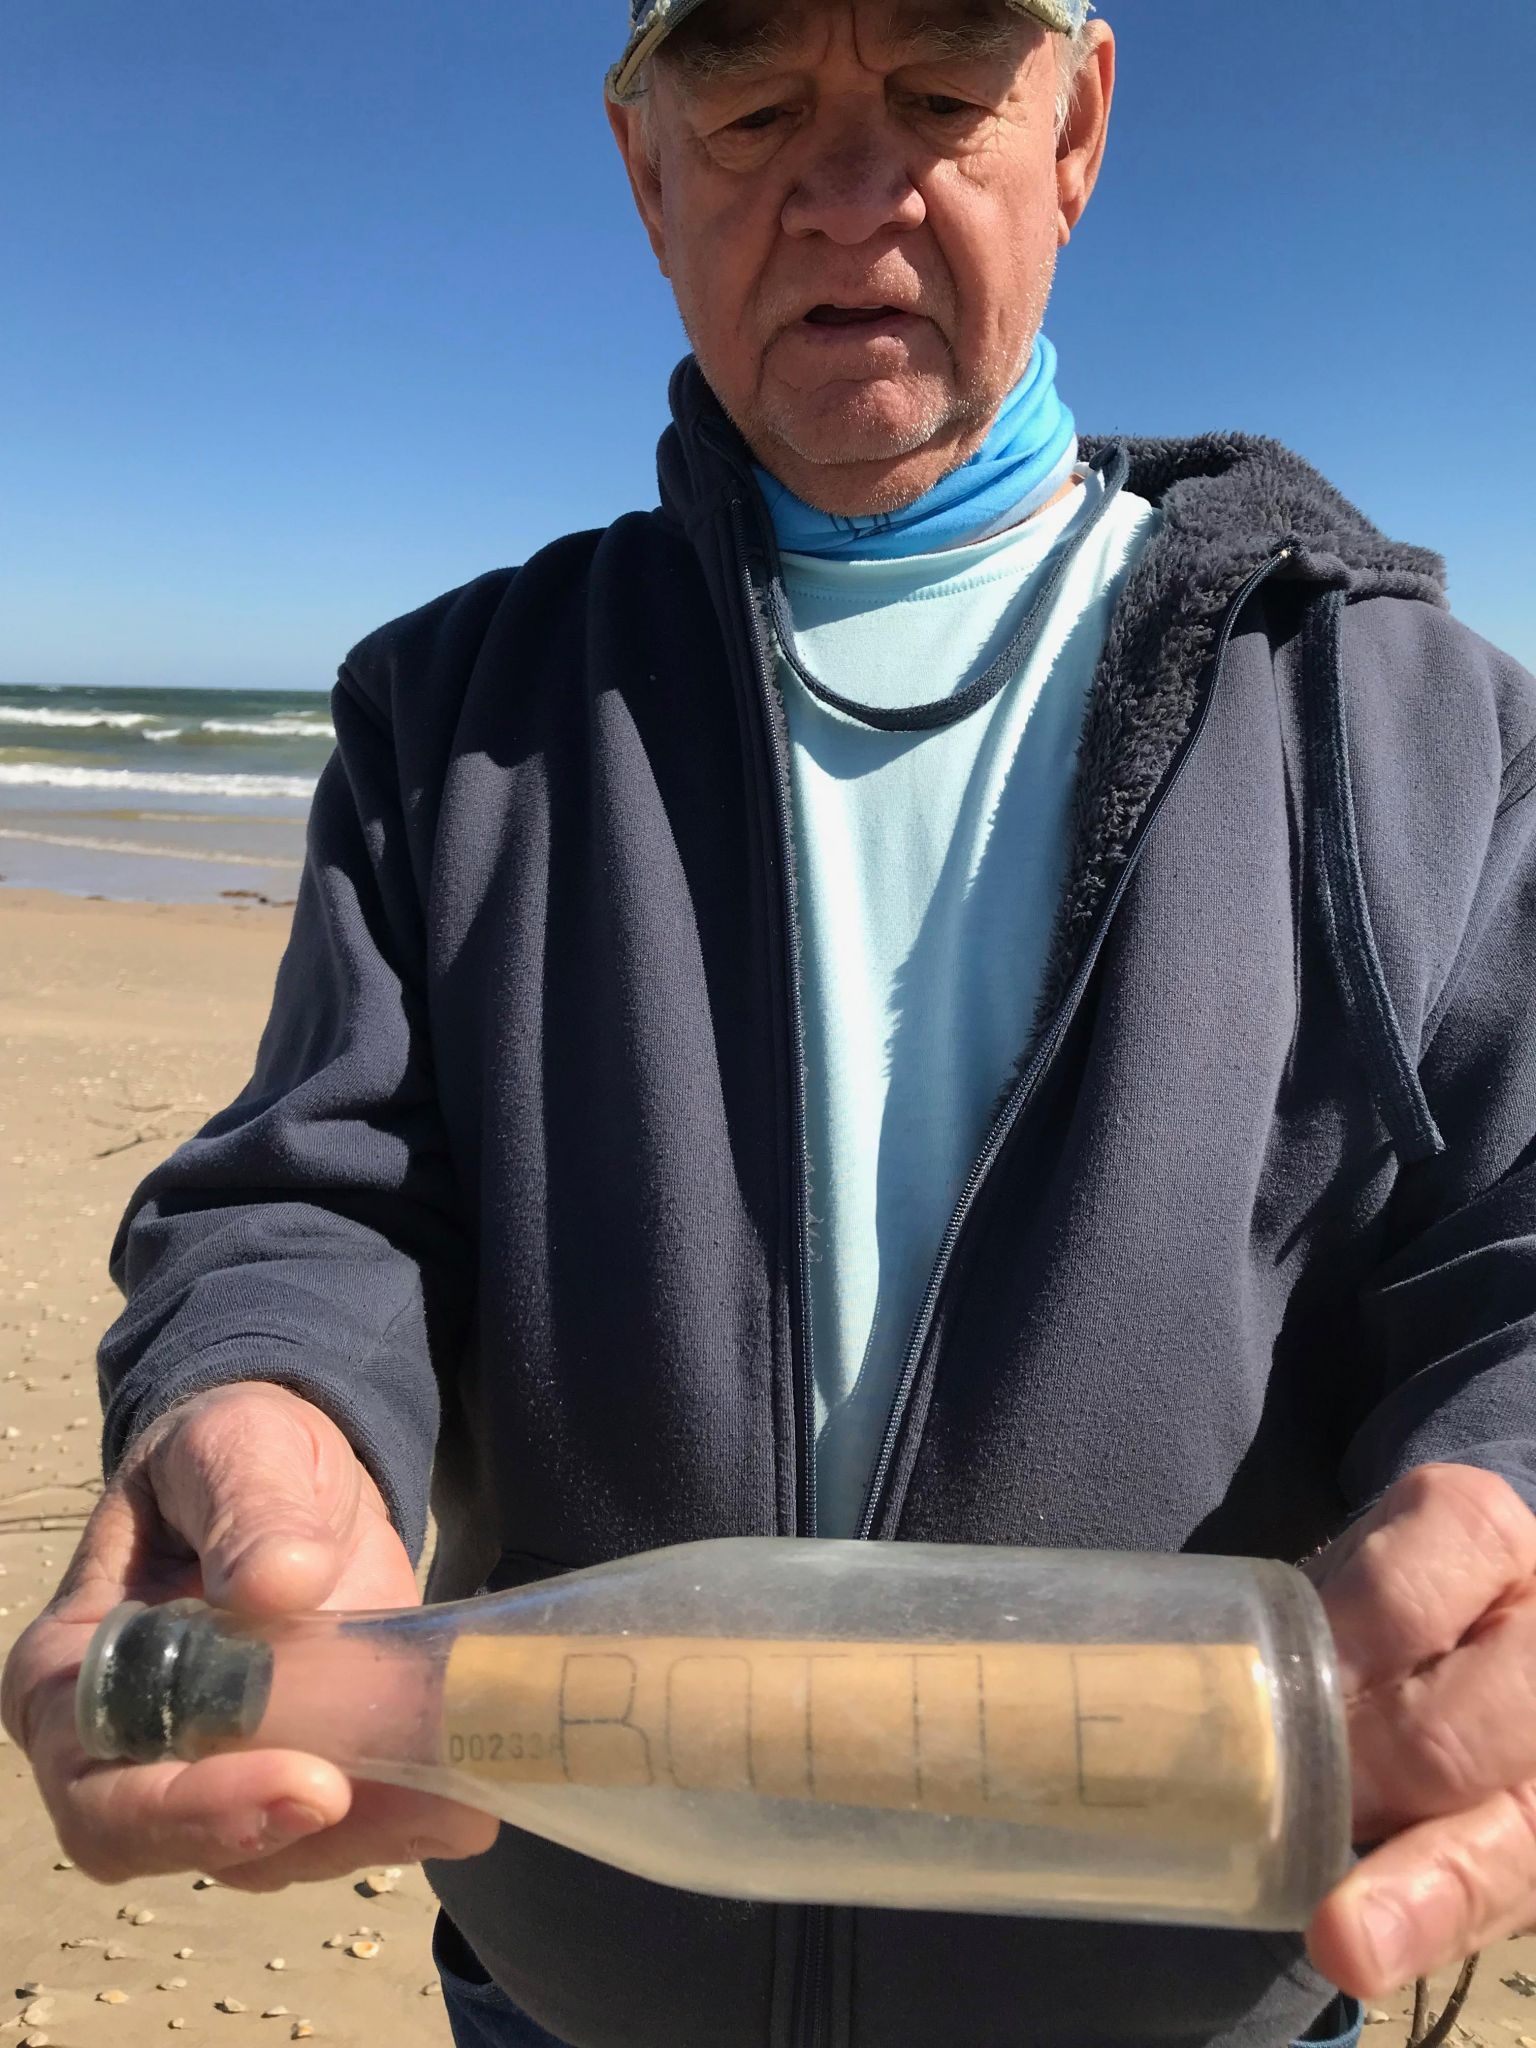 57-year-old message in bottle washes up on Texas shore - Chron thumbnail